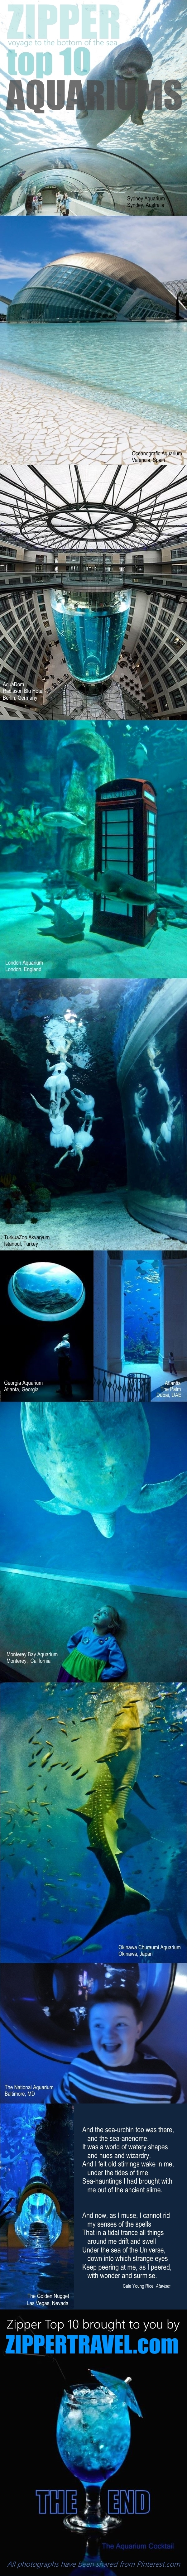 Photos of Zippertrave's Top 10 Aquariums images shared from Pinterest.com